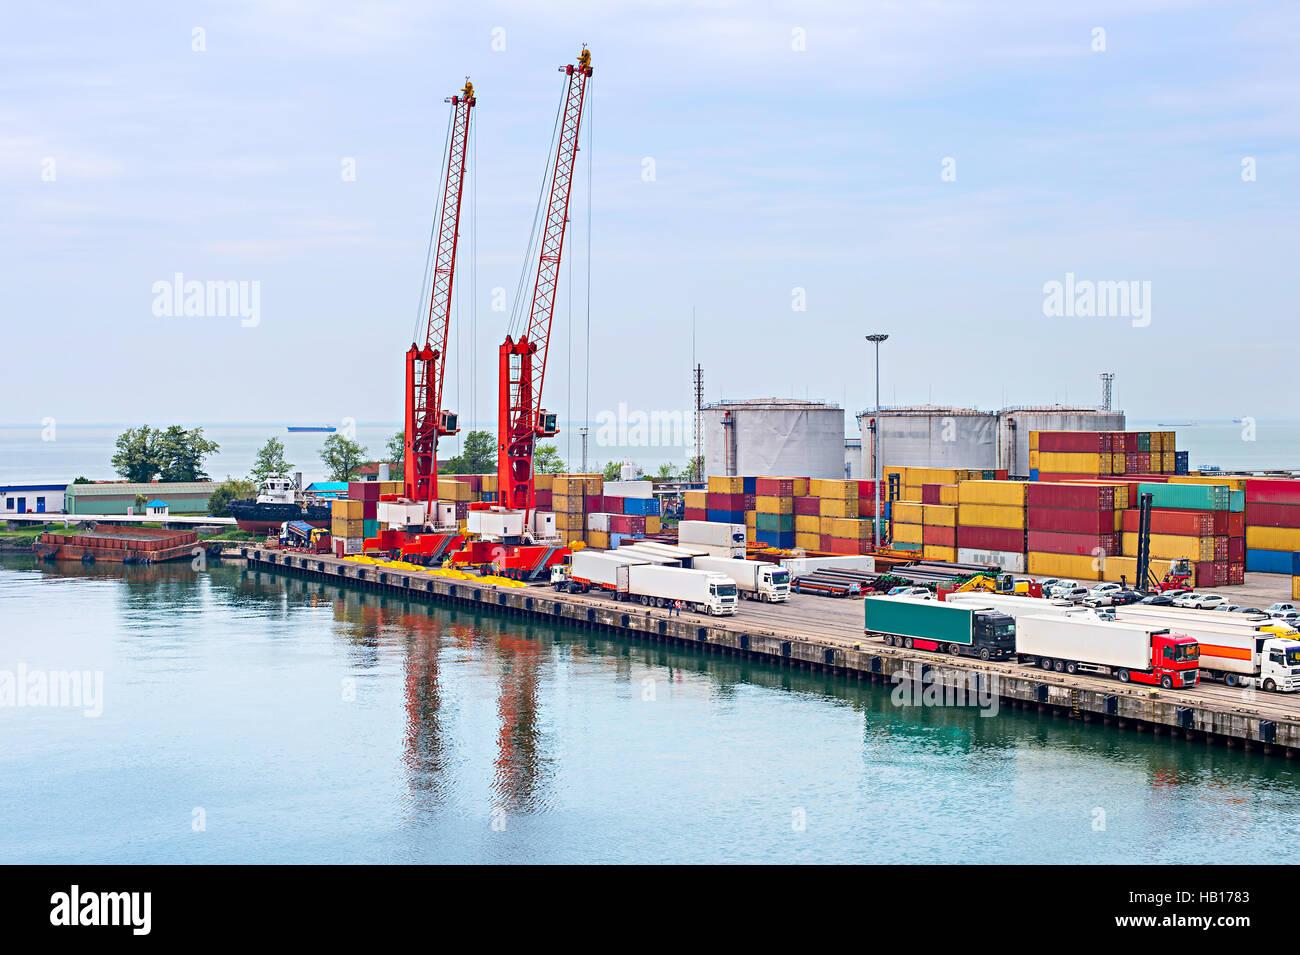 Batumi sea port, Georgia - Stock Image